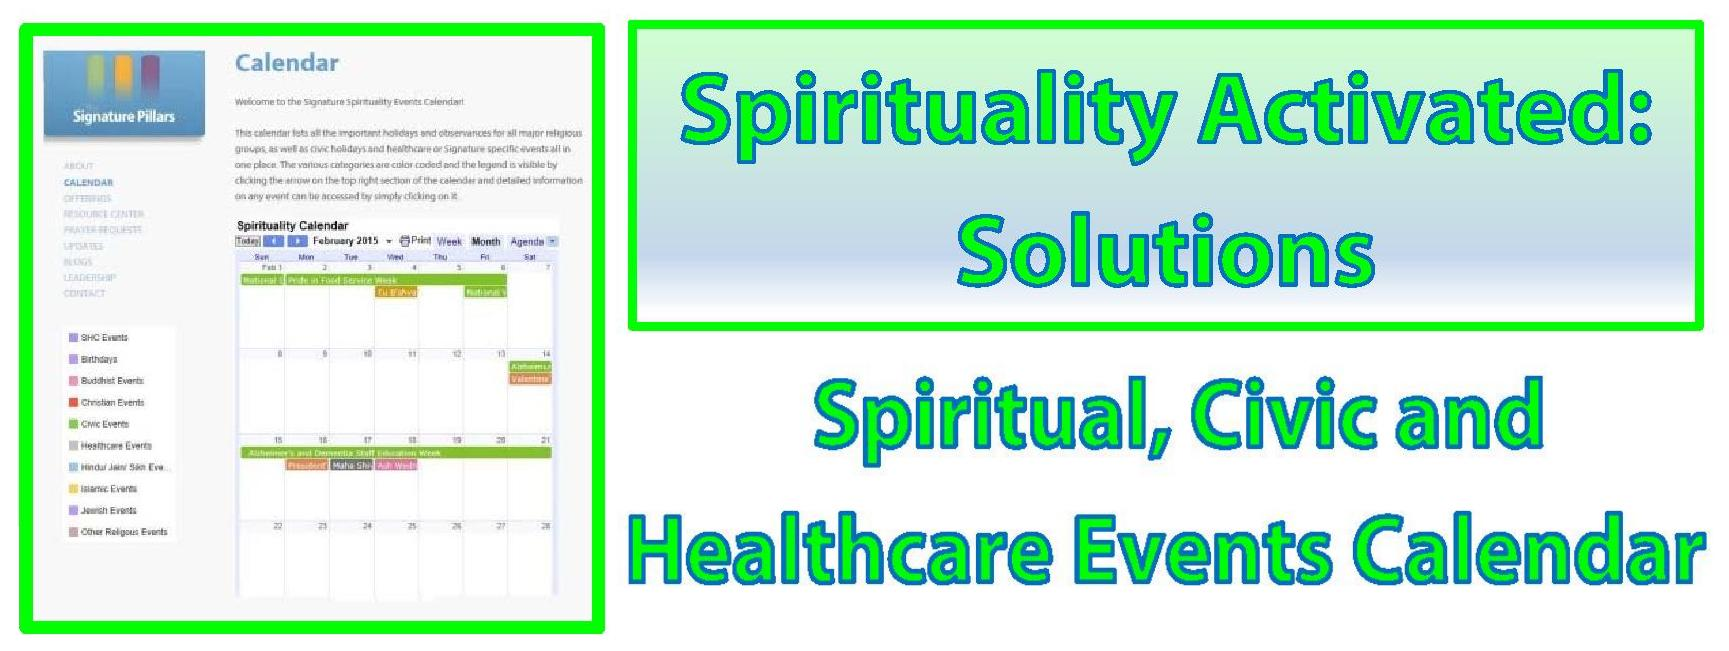 CHAPLAIN SOLUITONS - Spiritual, Civic and Healthcare Calendar-page-001